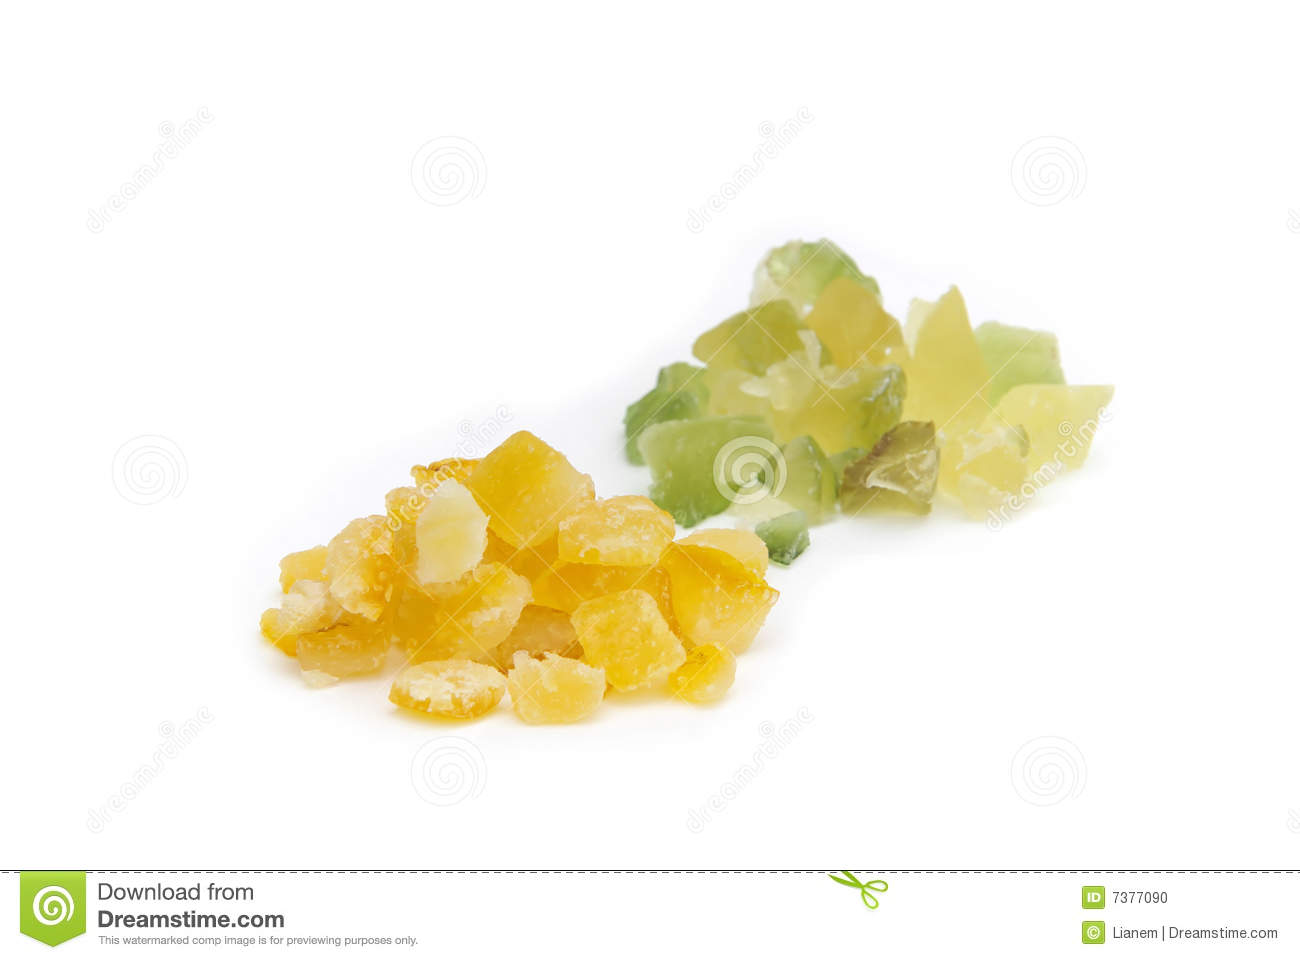 Candied Lemon Peel And Candied Orange Peel Stock Photo - Image ...